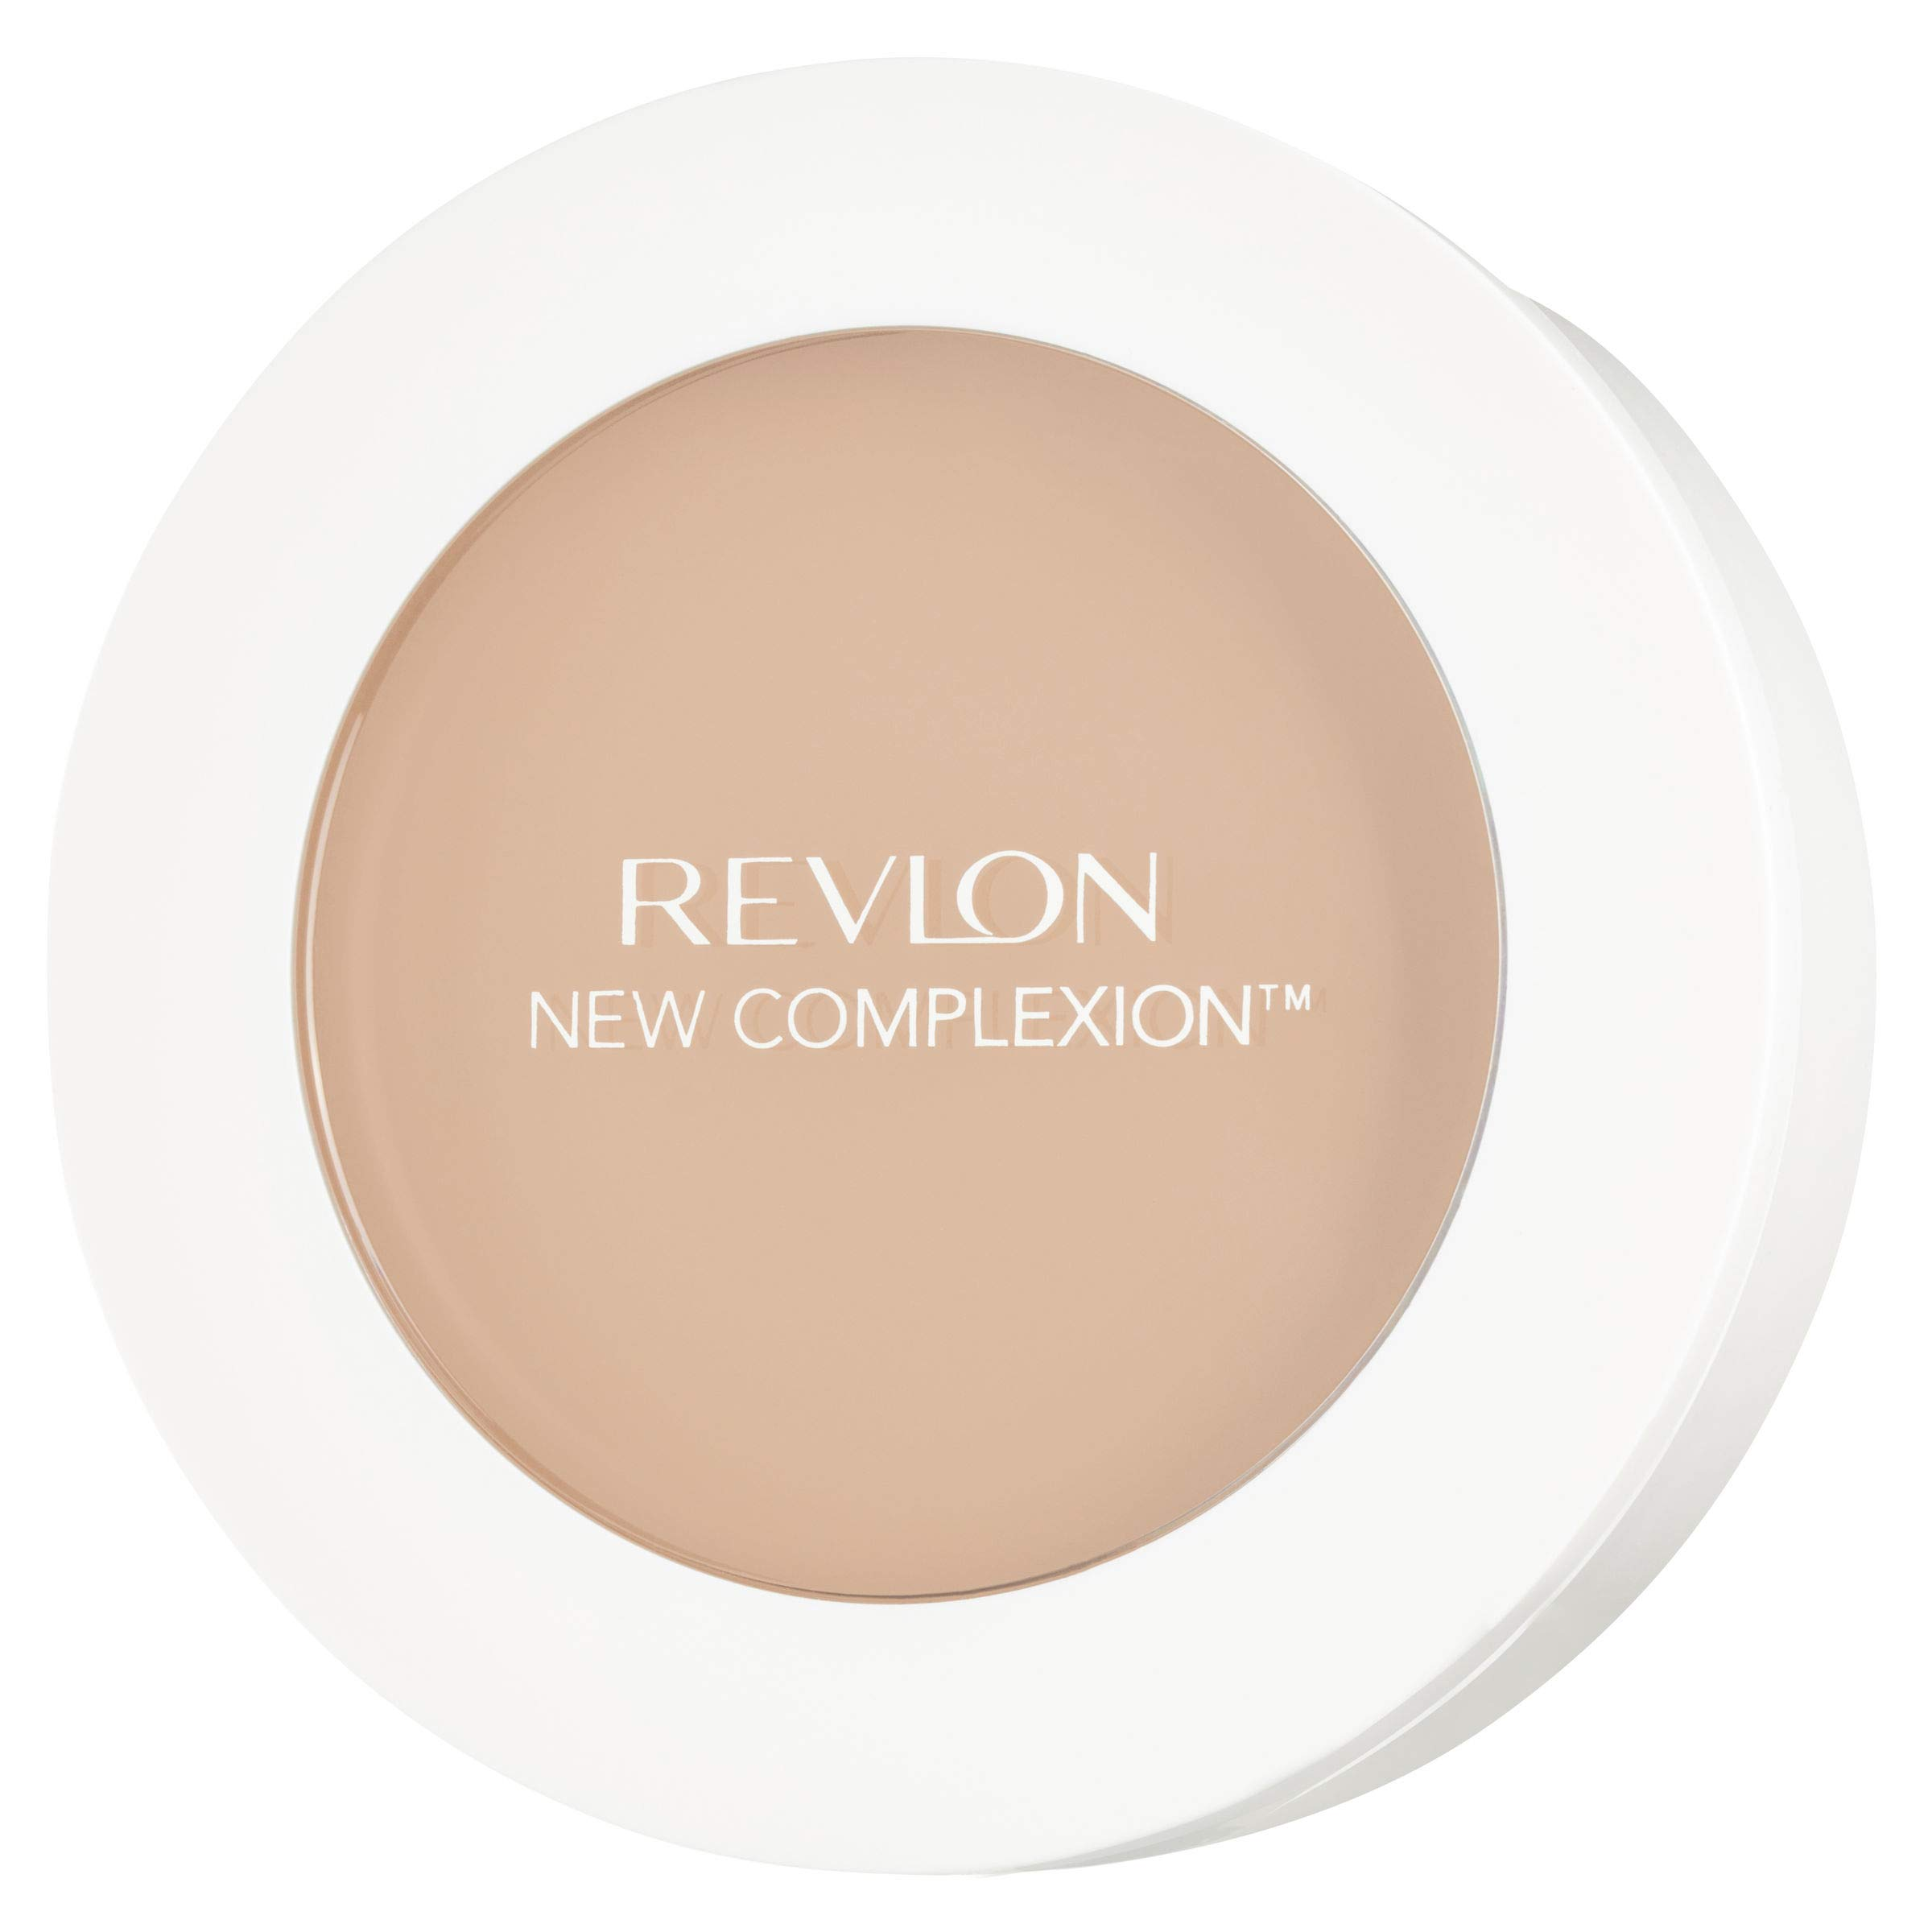 Revlon New Complexion One-Step Compact Makeup, Natural Beige